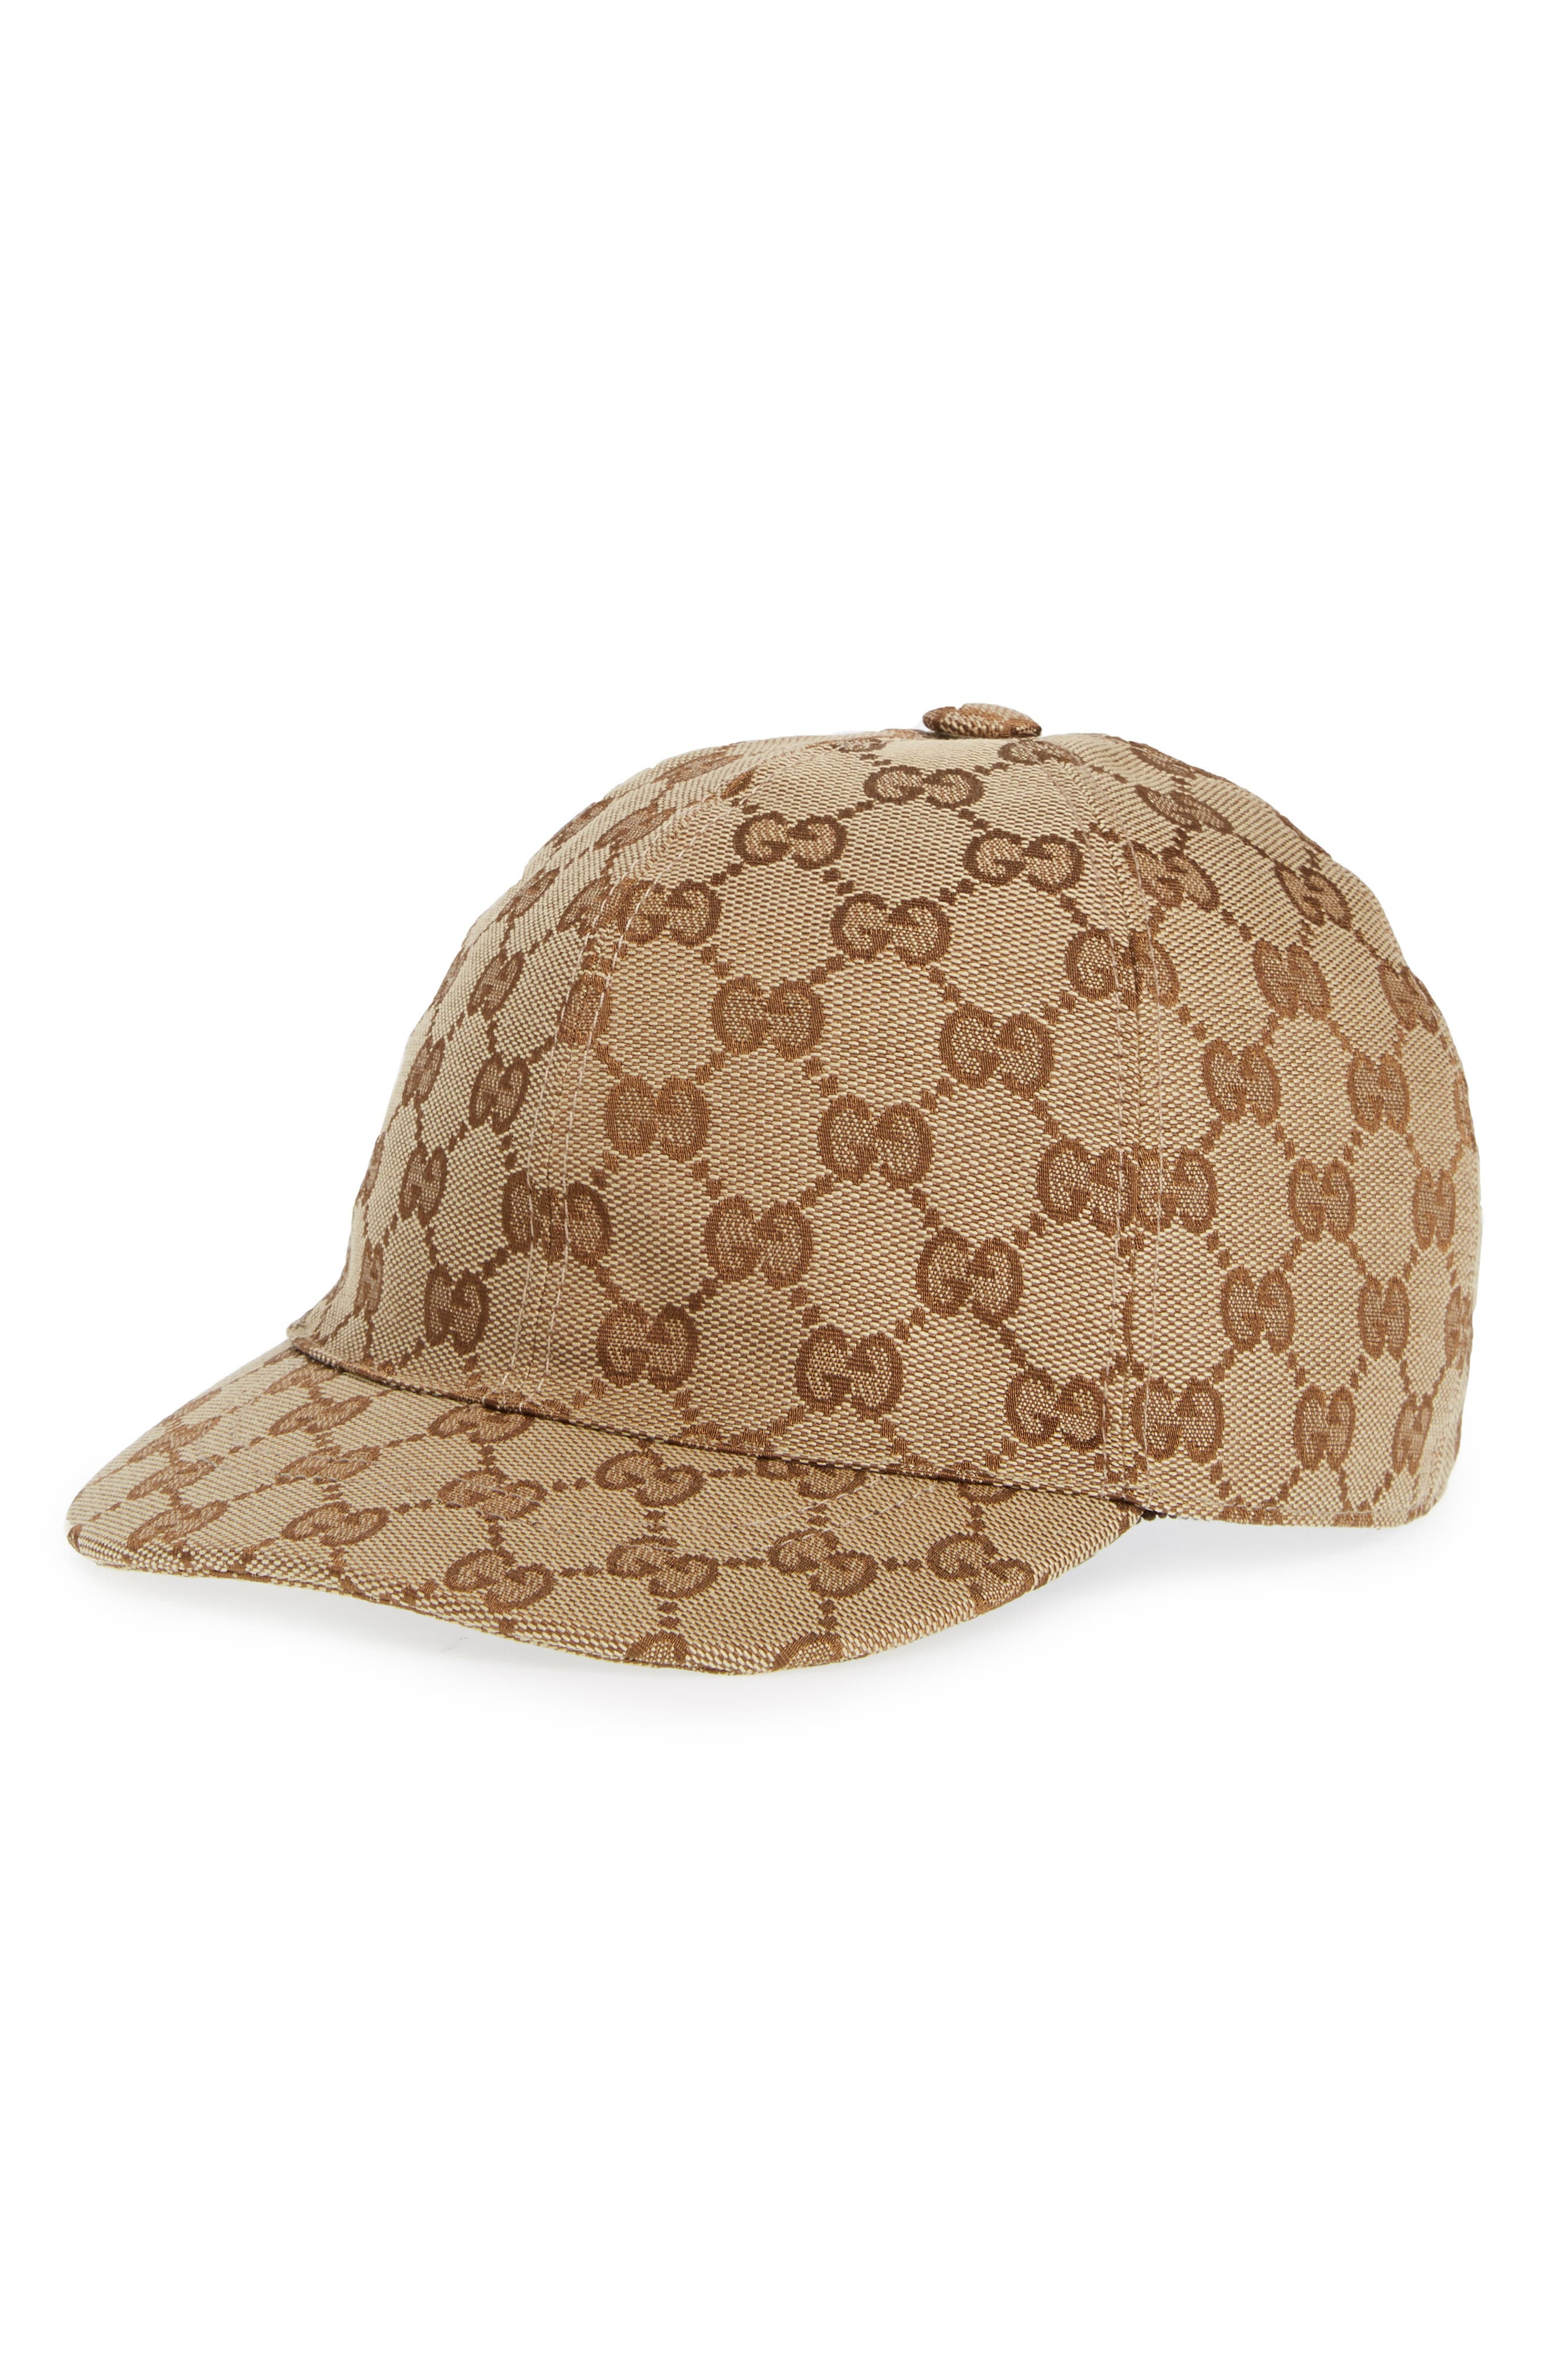 GUCCI, Logo Baseball Cap, Main thumbnail 1, color, 213